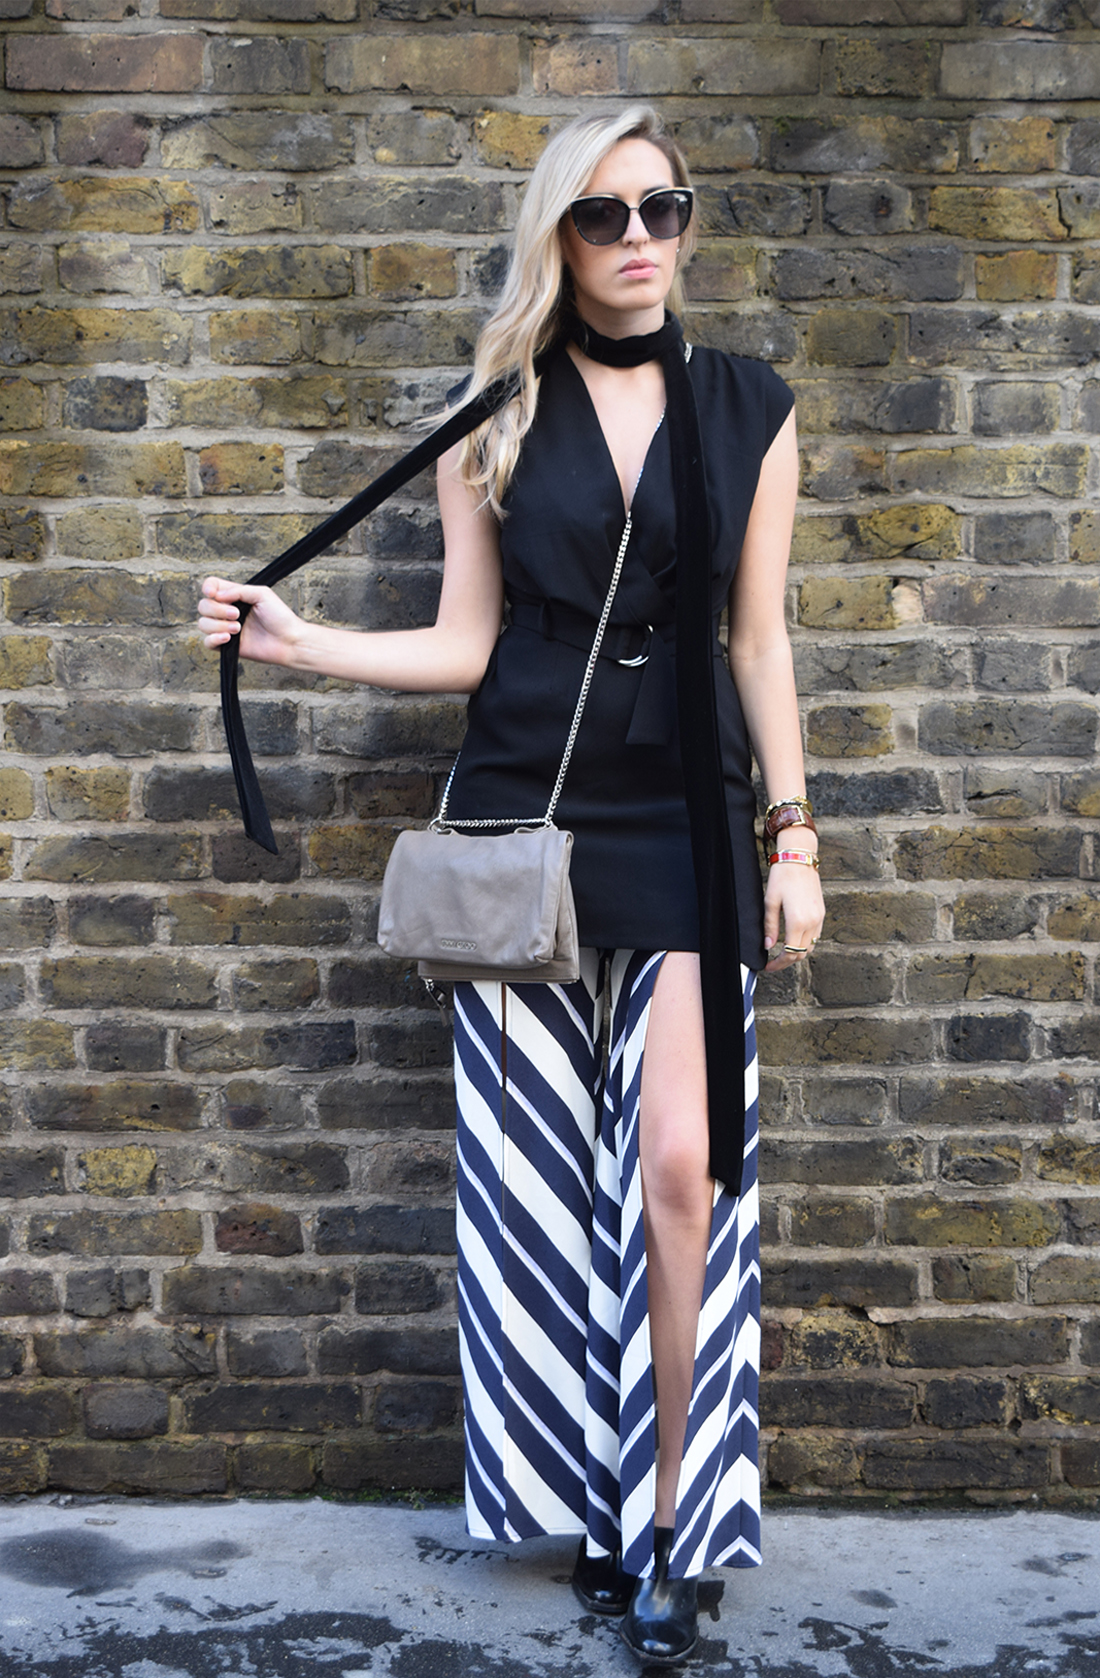 stripes trousers slit, fashion week, street style fashion week